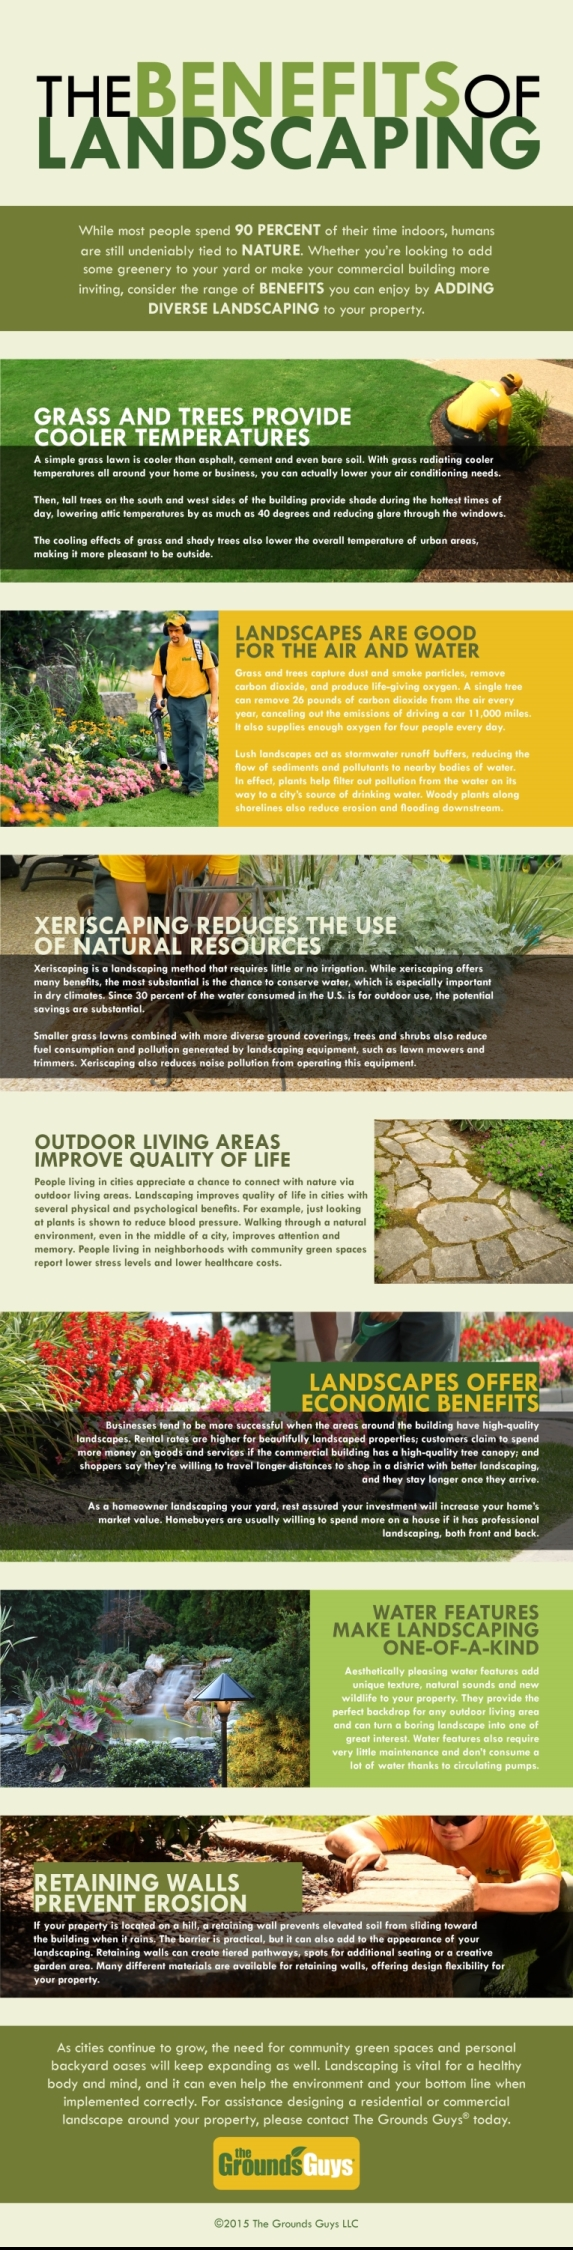 Benefits of Landscaping Infographic